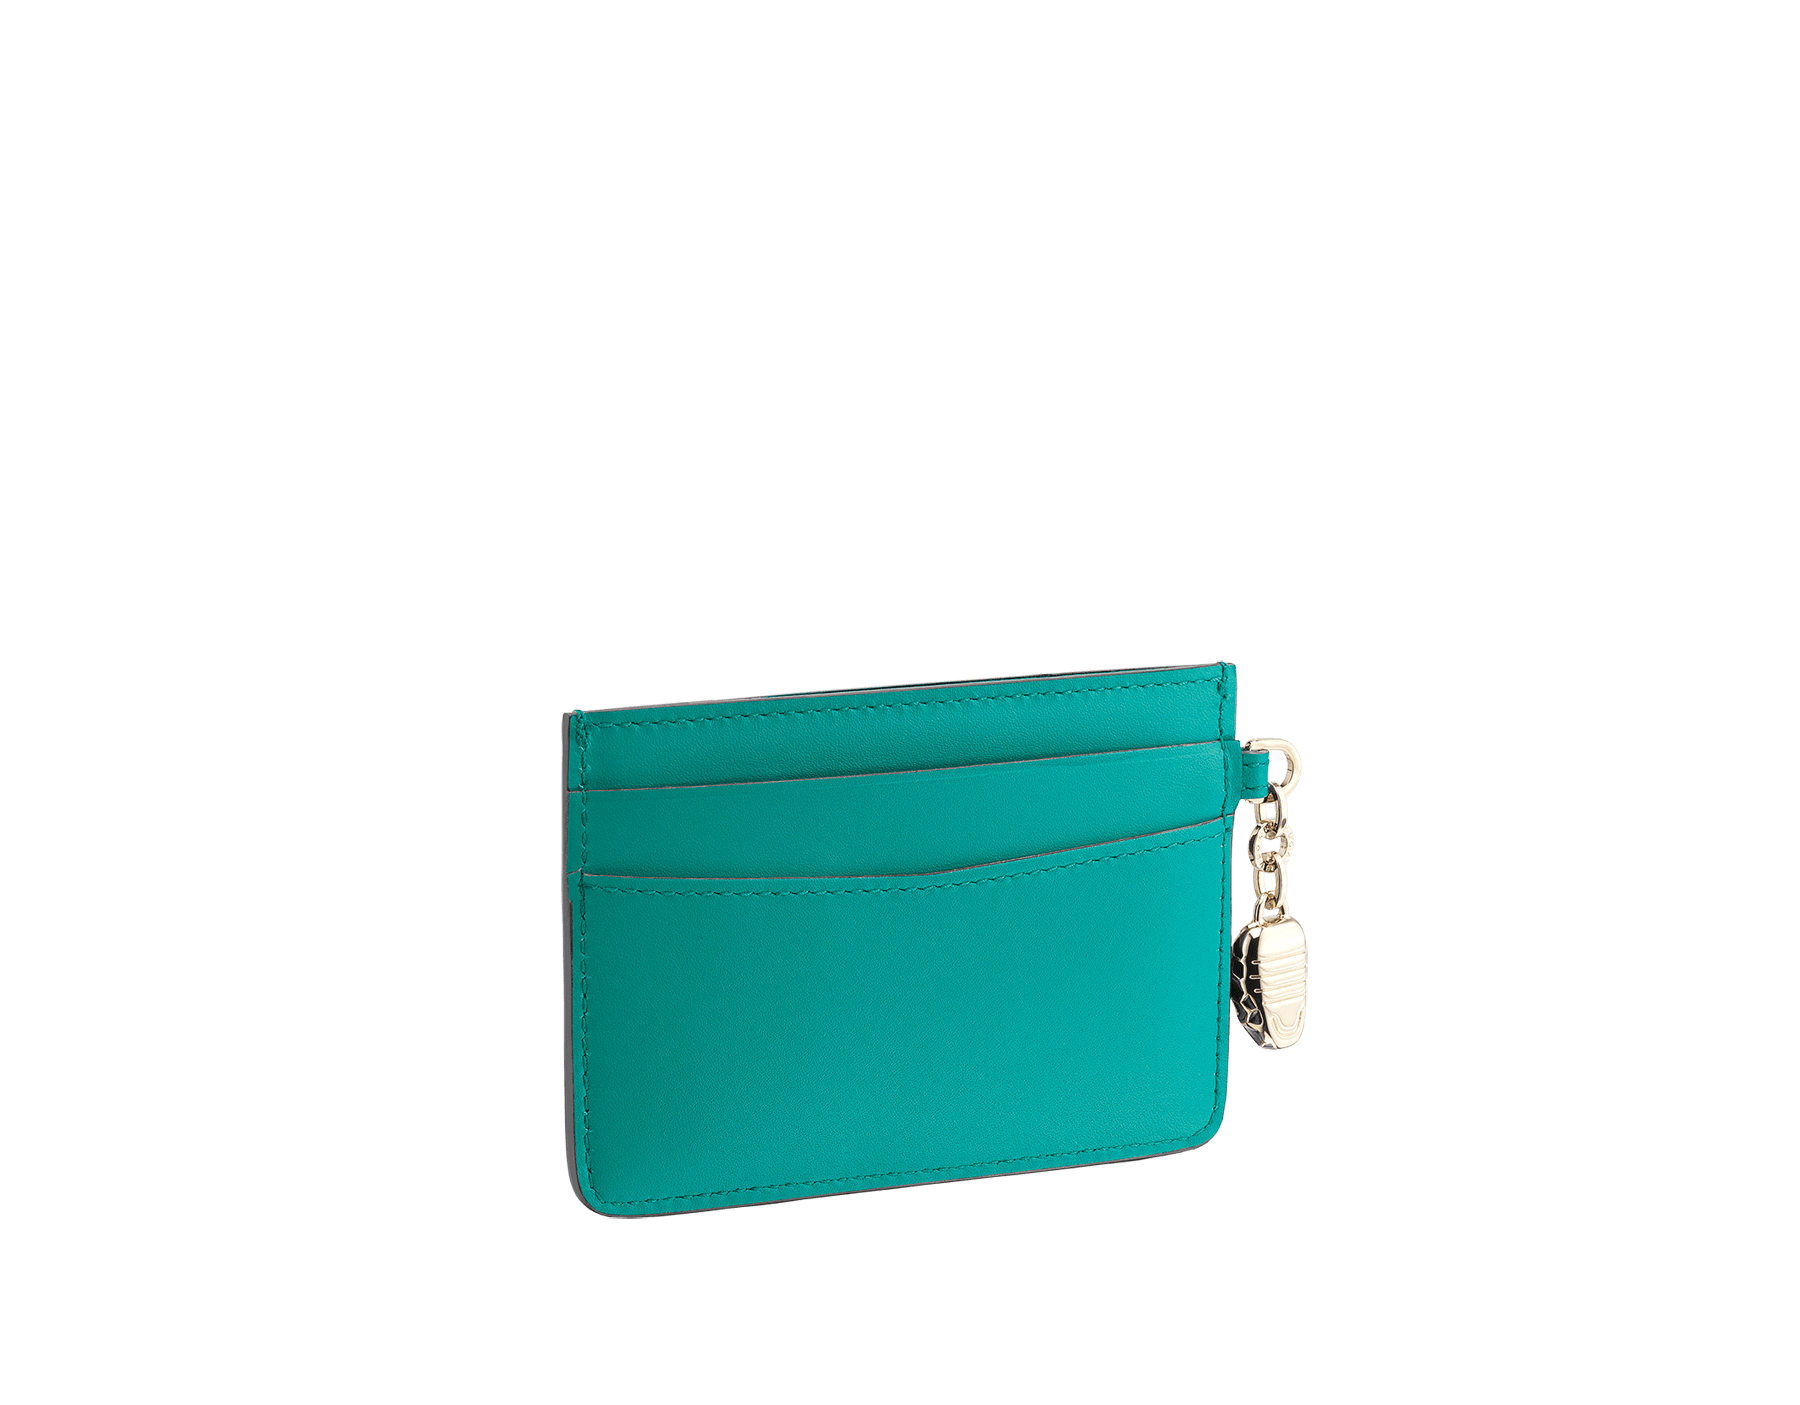 Serpenti Forever credit card holder in tropical tourquoise and deep jade calf leather. Iconic snakehead charm in black and white enamel, with green malachite enamel eyes. 288020 image 2